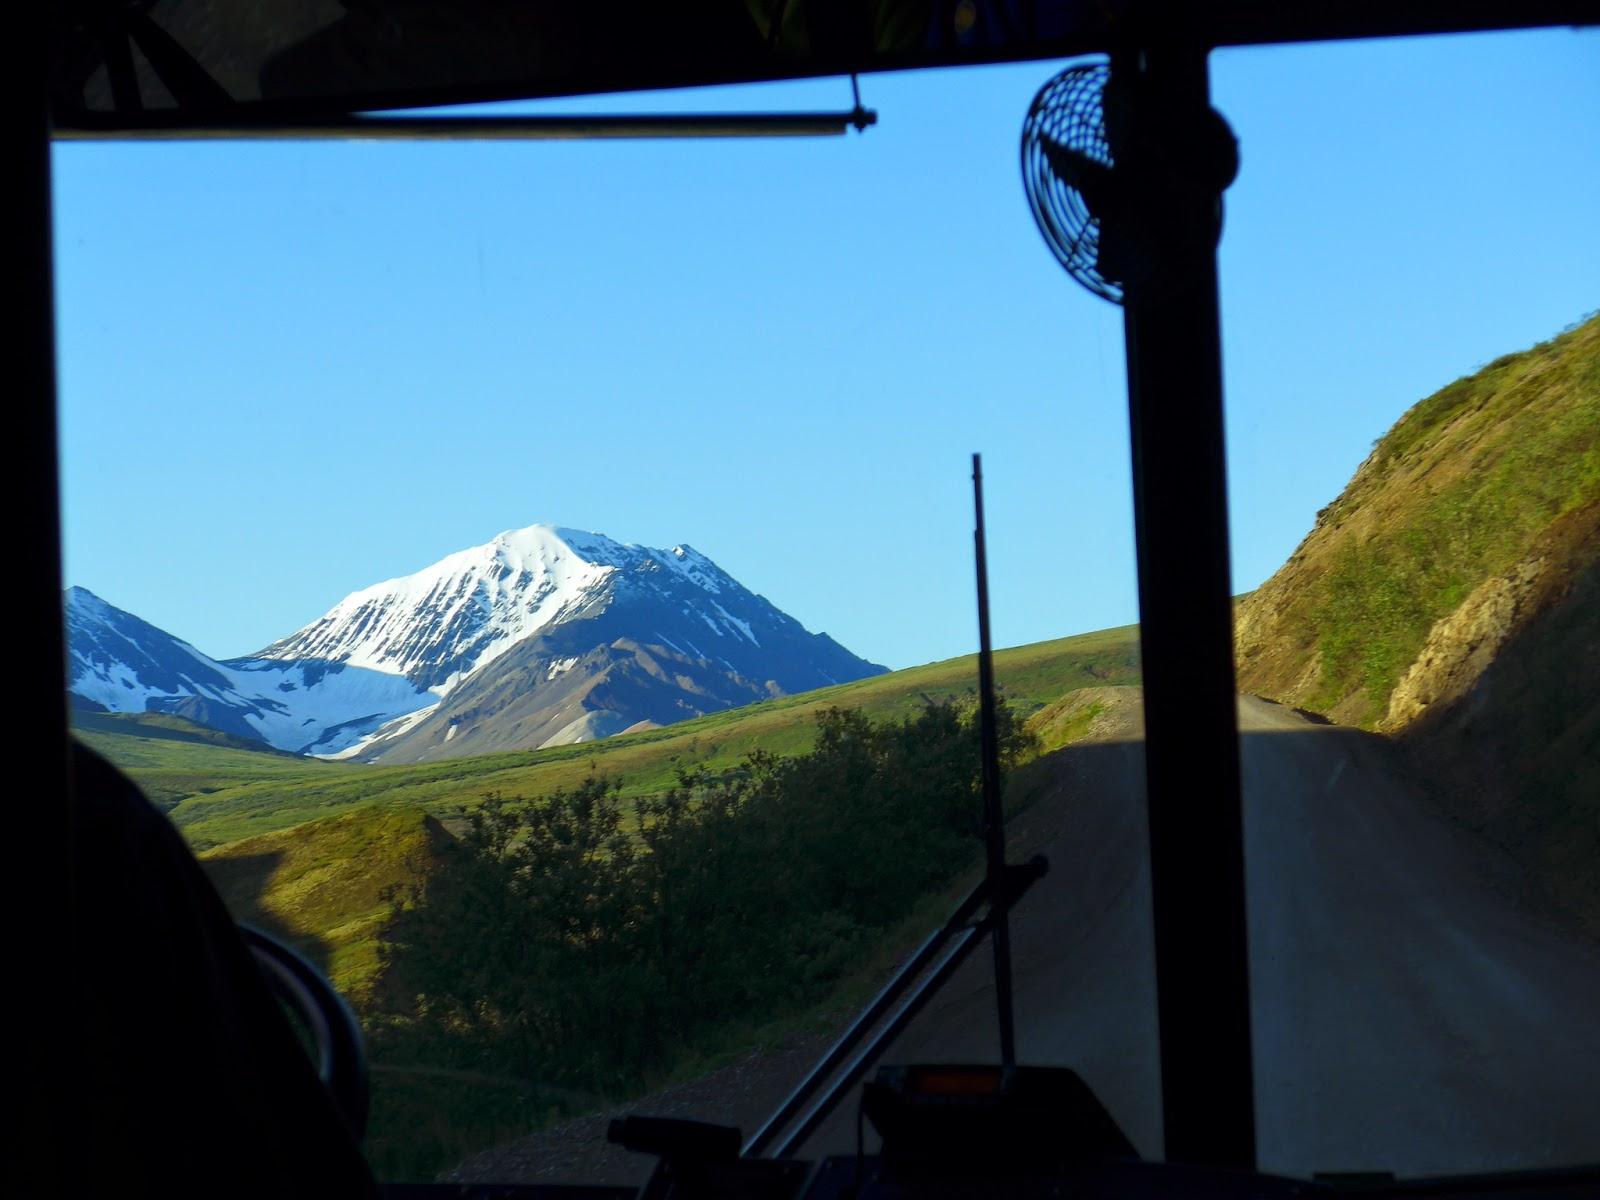 Driving to Eielson, 66 miles into Denali National Park